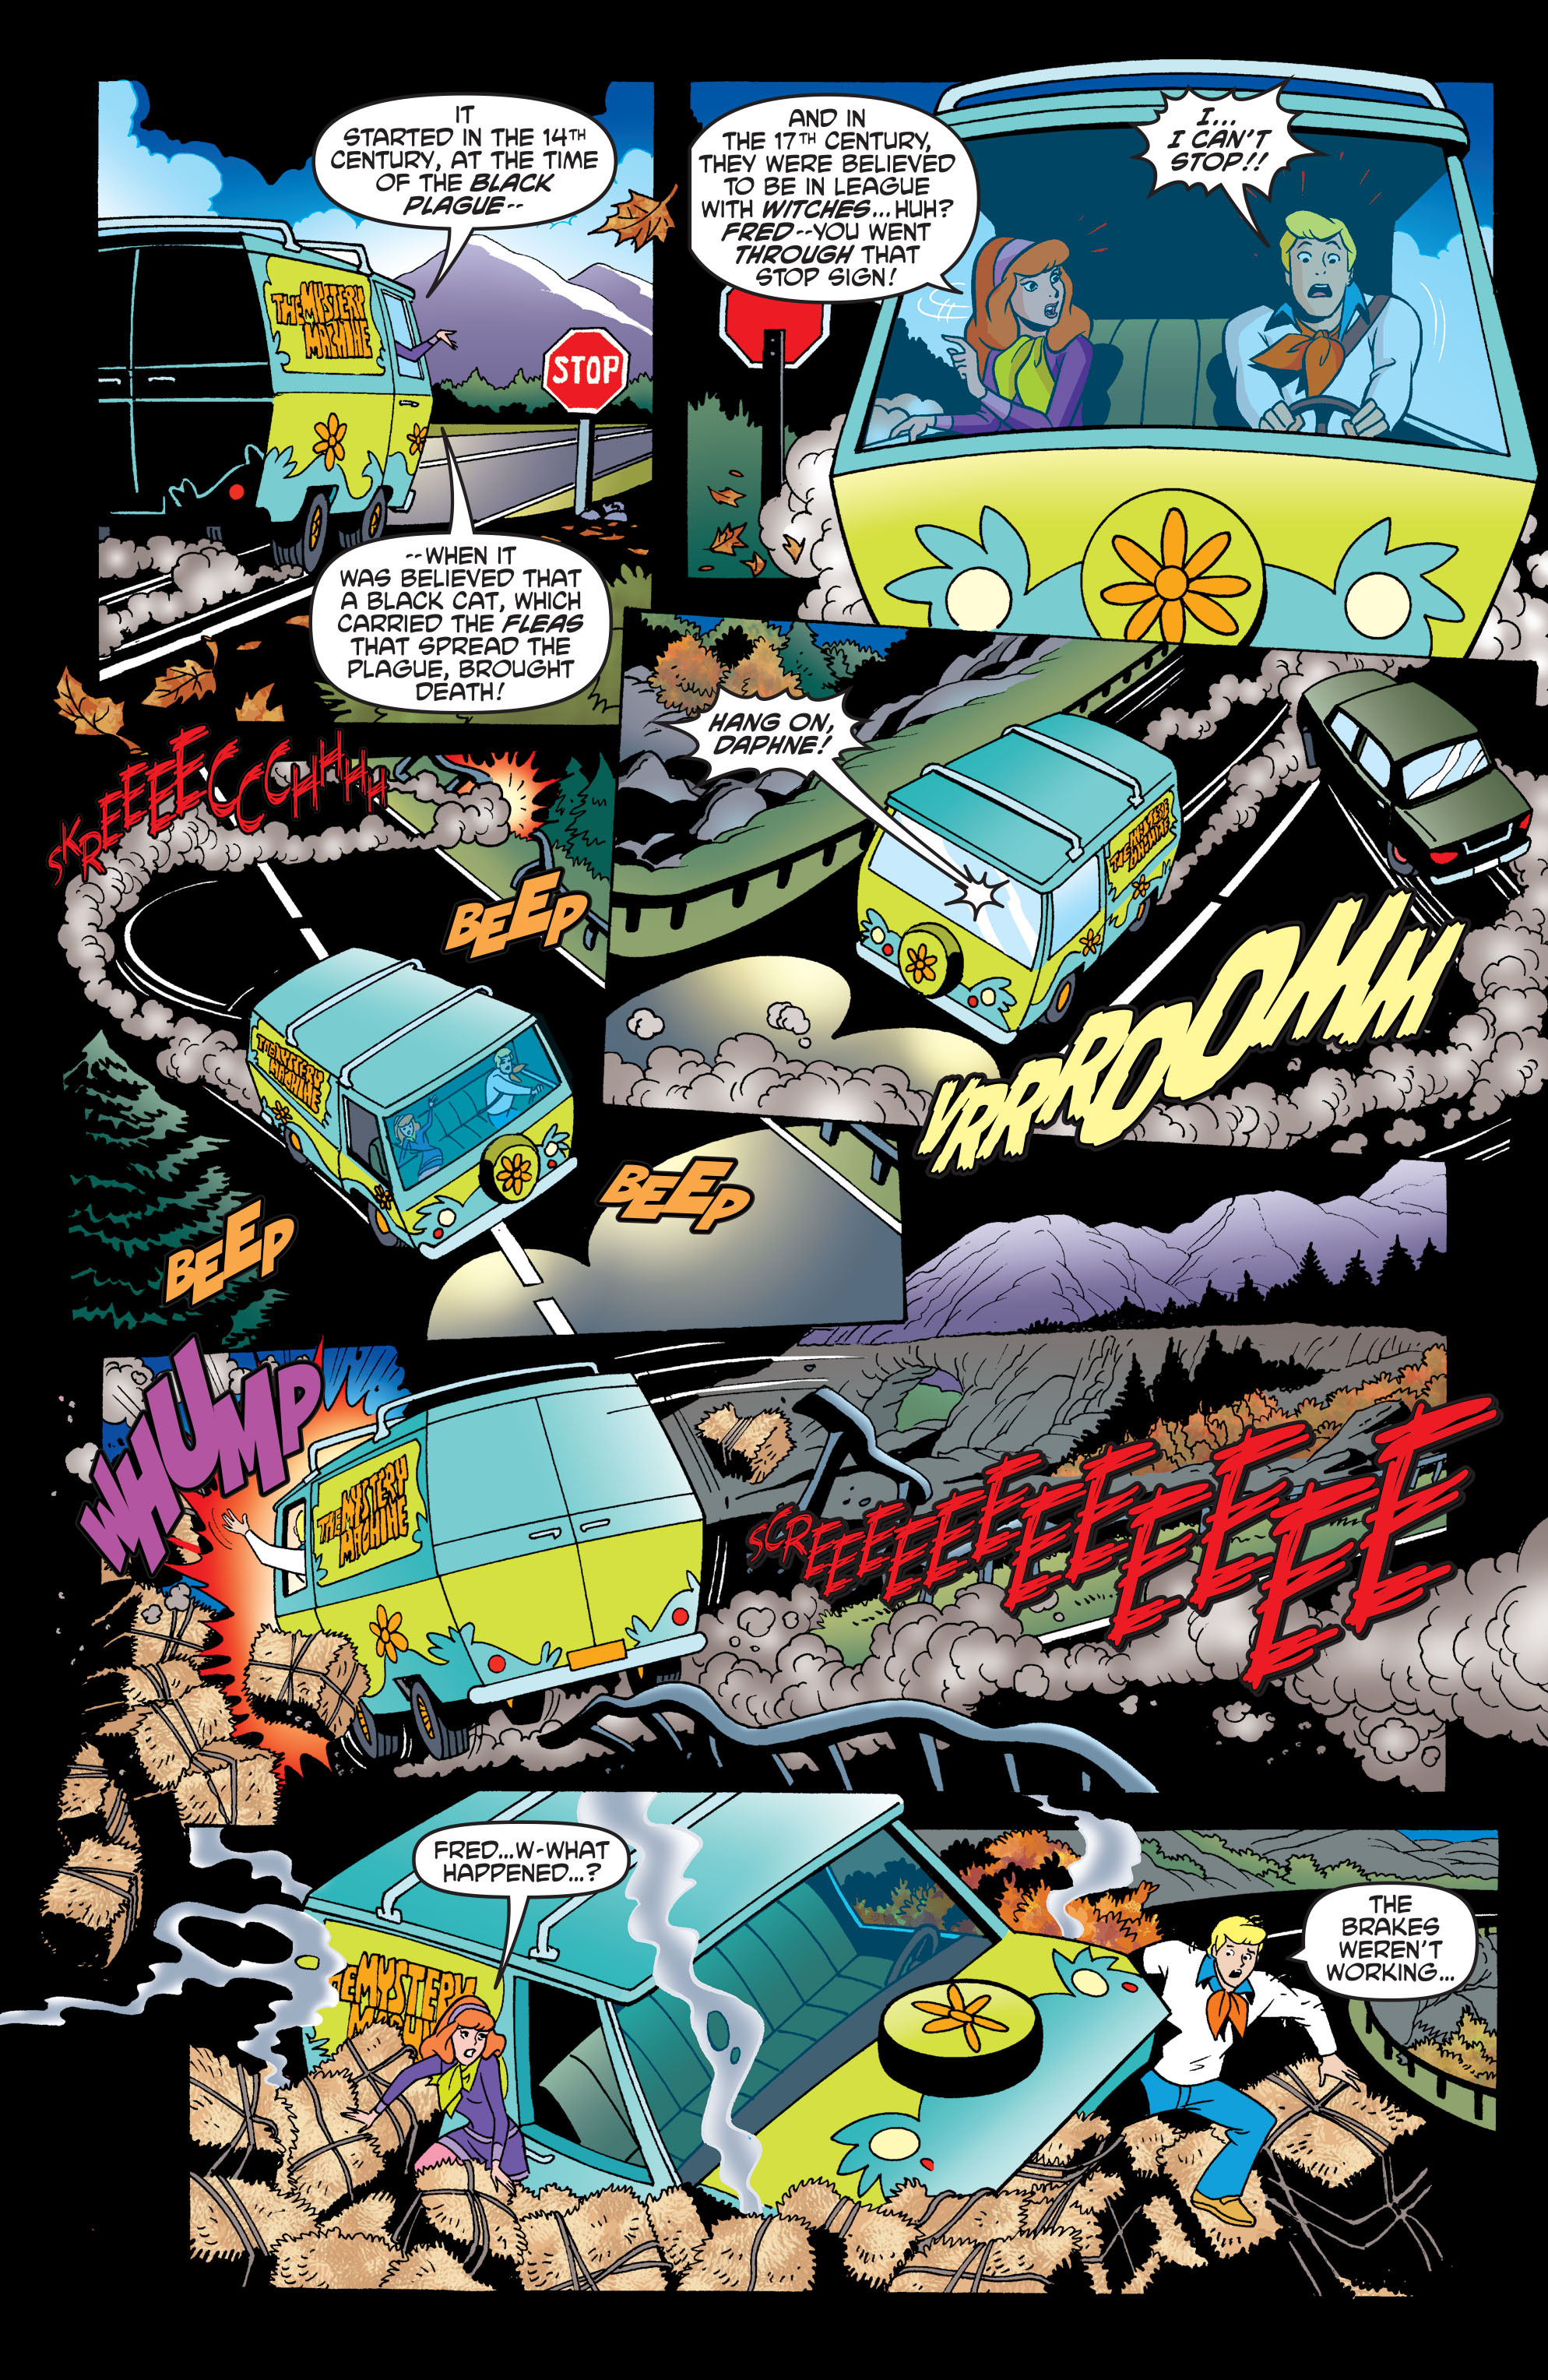 Read online Scooby-Doo: Where Are You? comic -  Issue #63 - 21